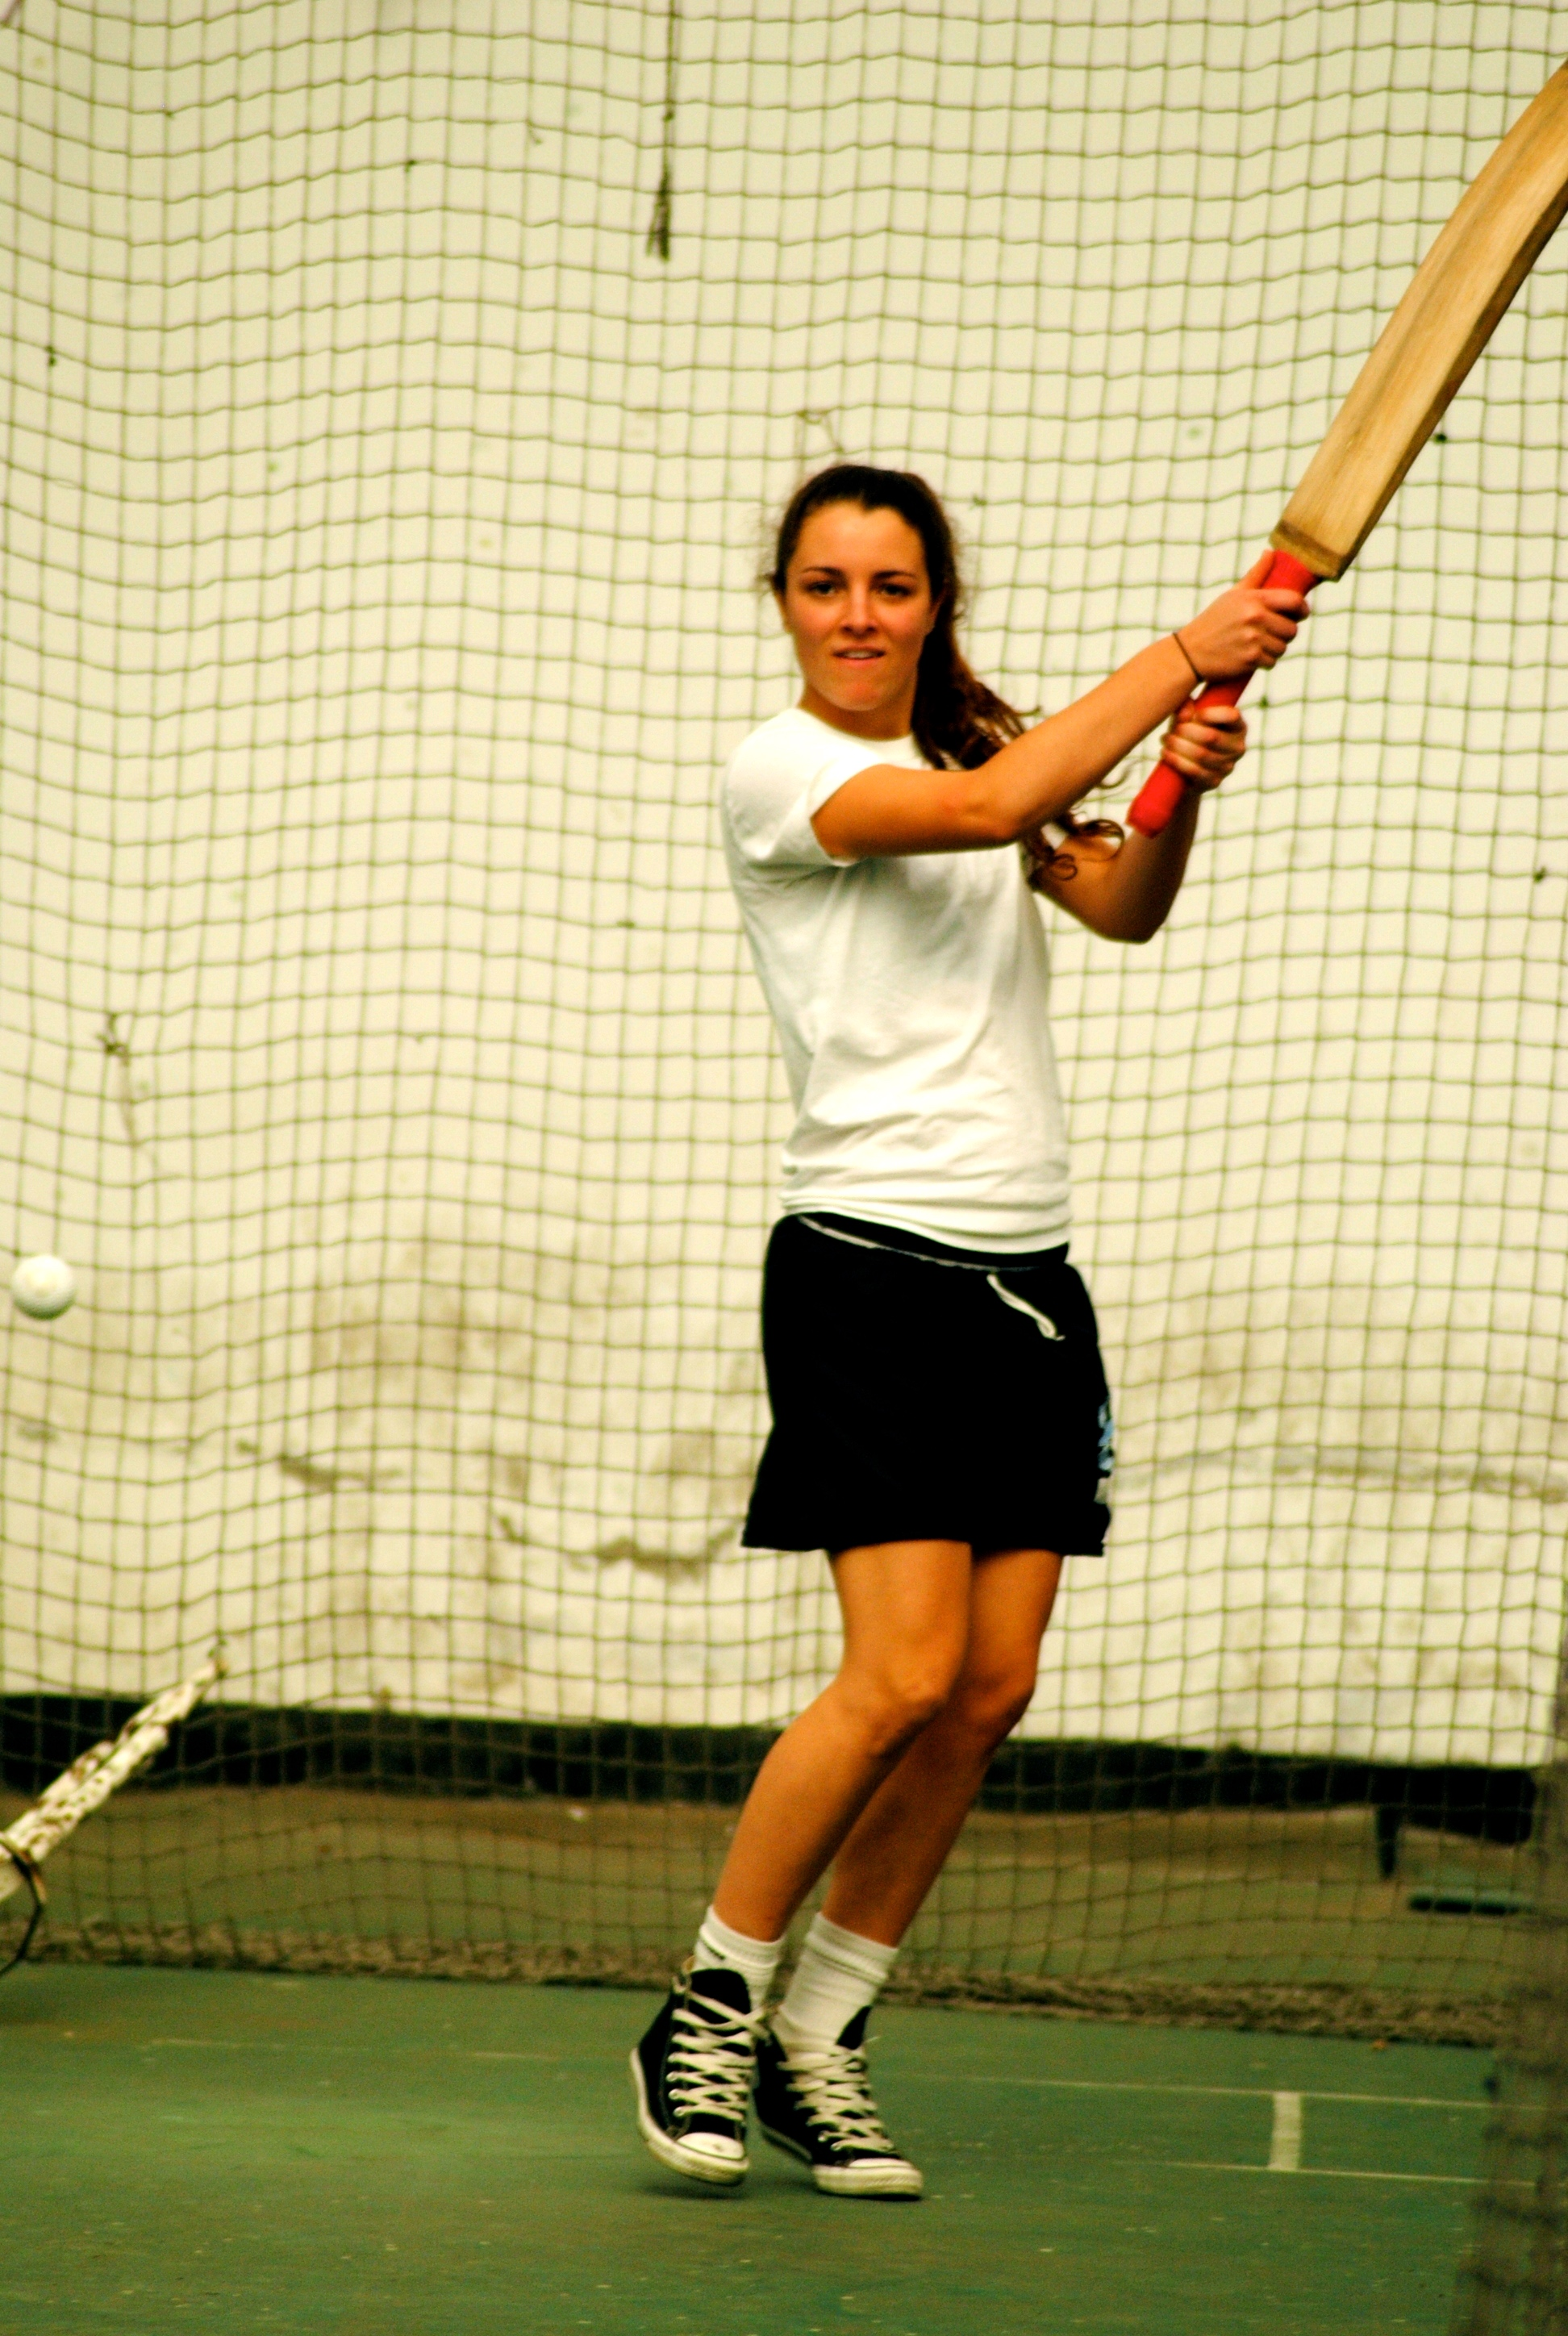 Hannah playing cricket